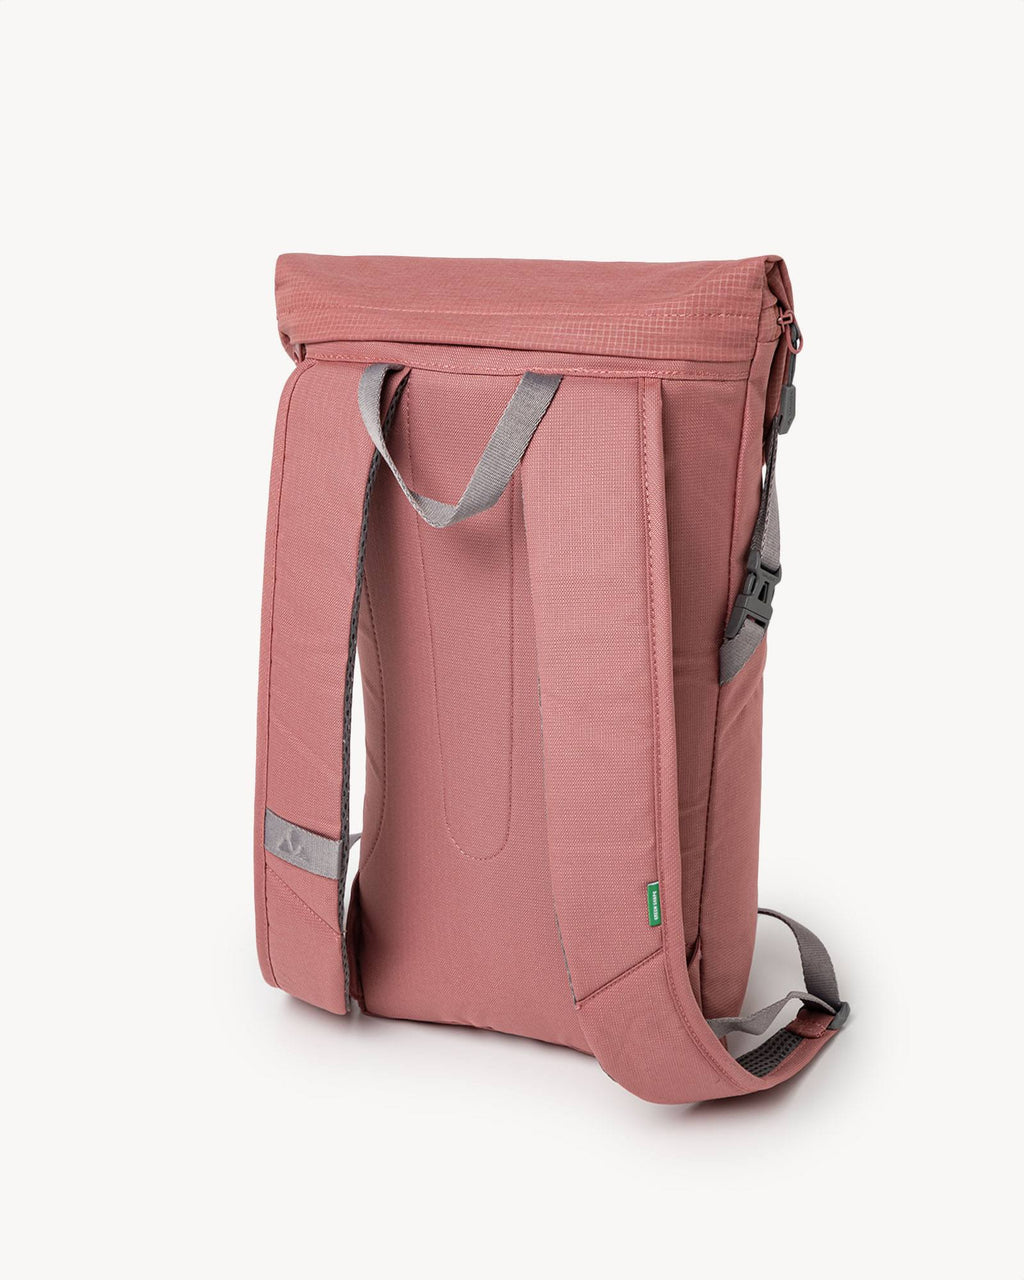 variant_2 | EN Rose Backpack Women | DE Rucksack Altrosa Damen